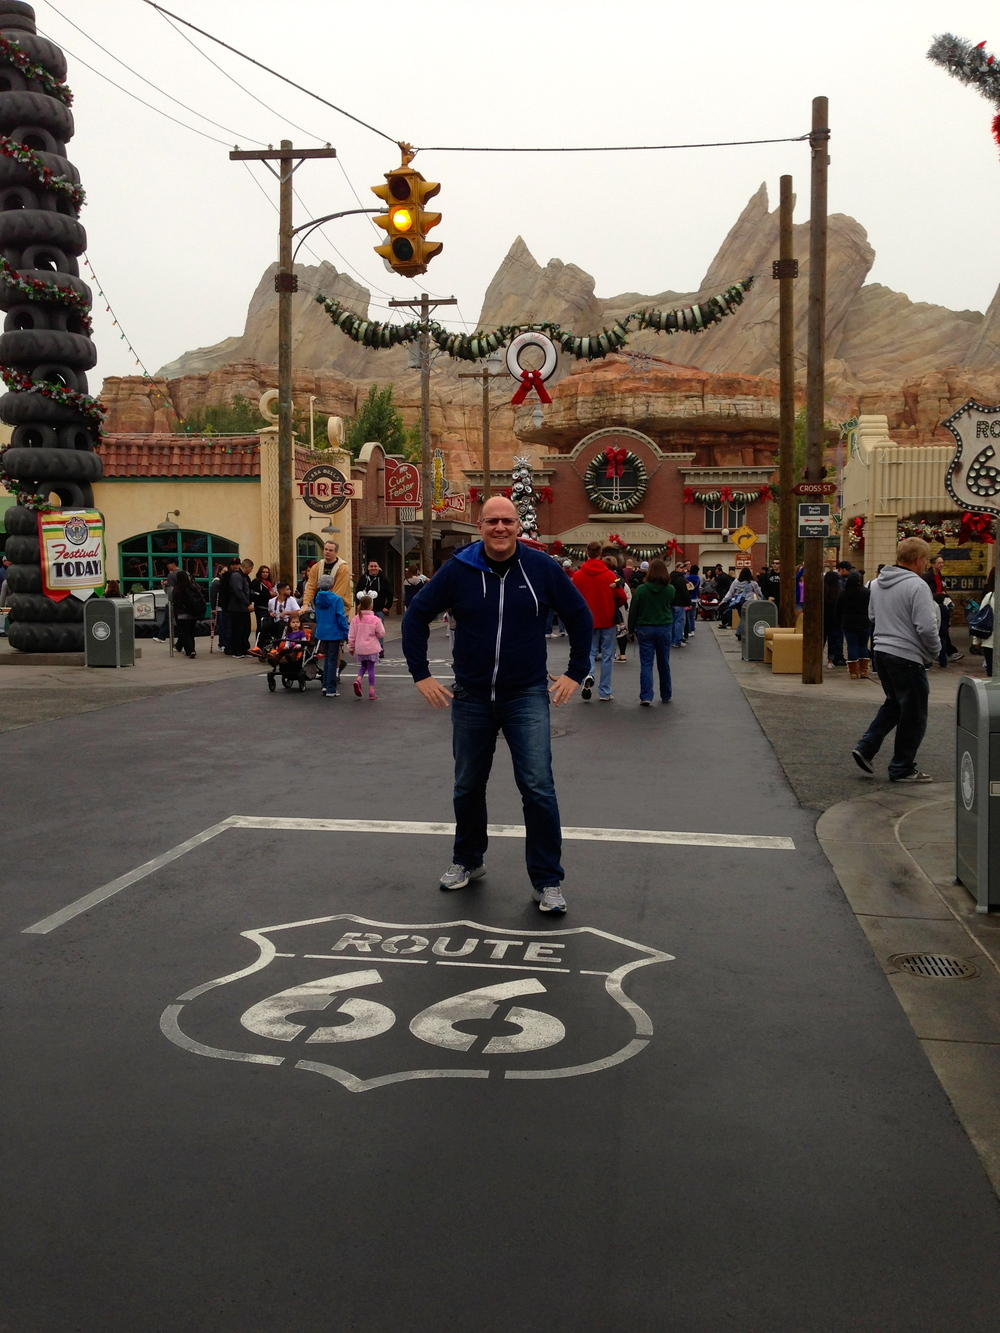 Dan in Cars Land.